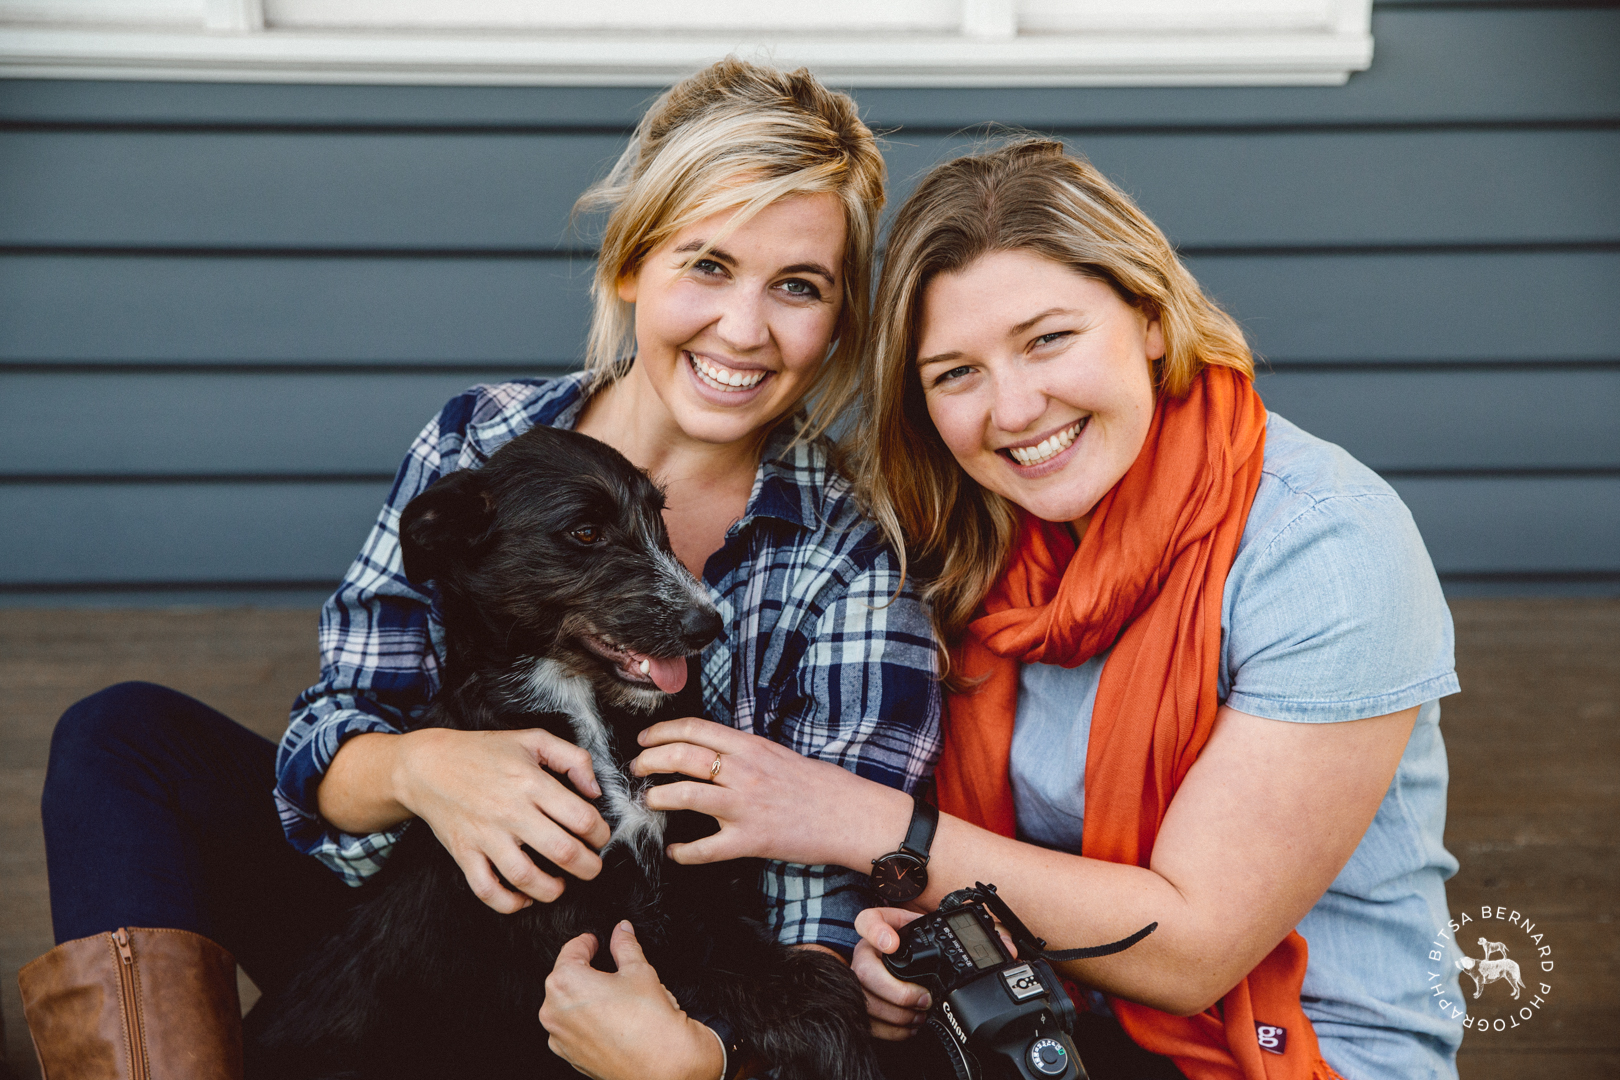 Caitlin & Kirstie - Co-hosts of The Pet Photographers Club Podcast